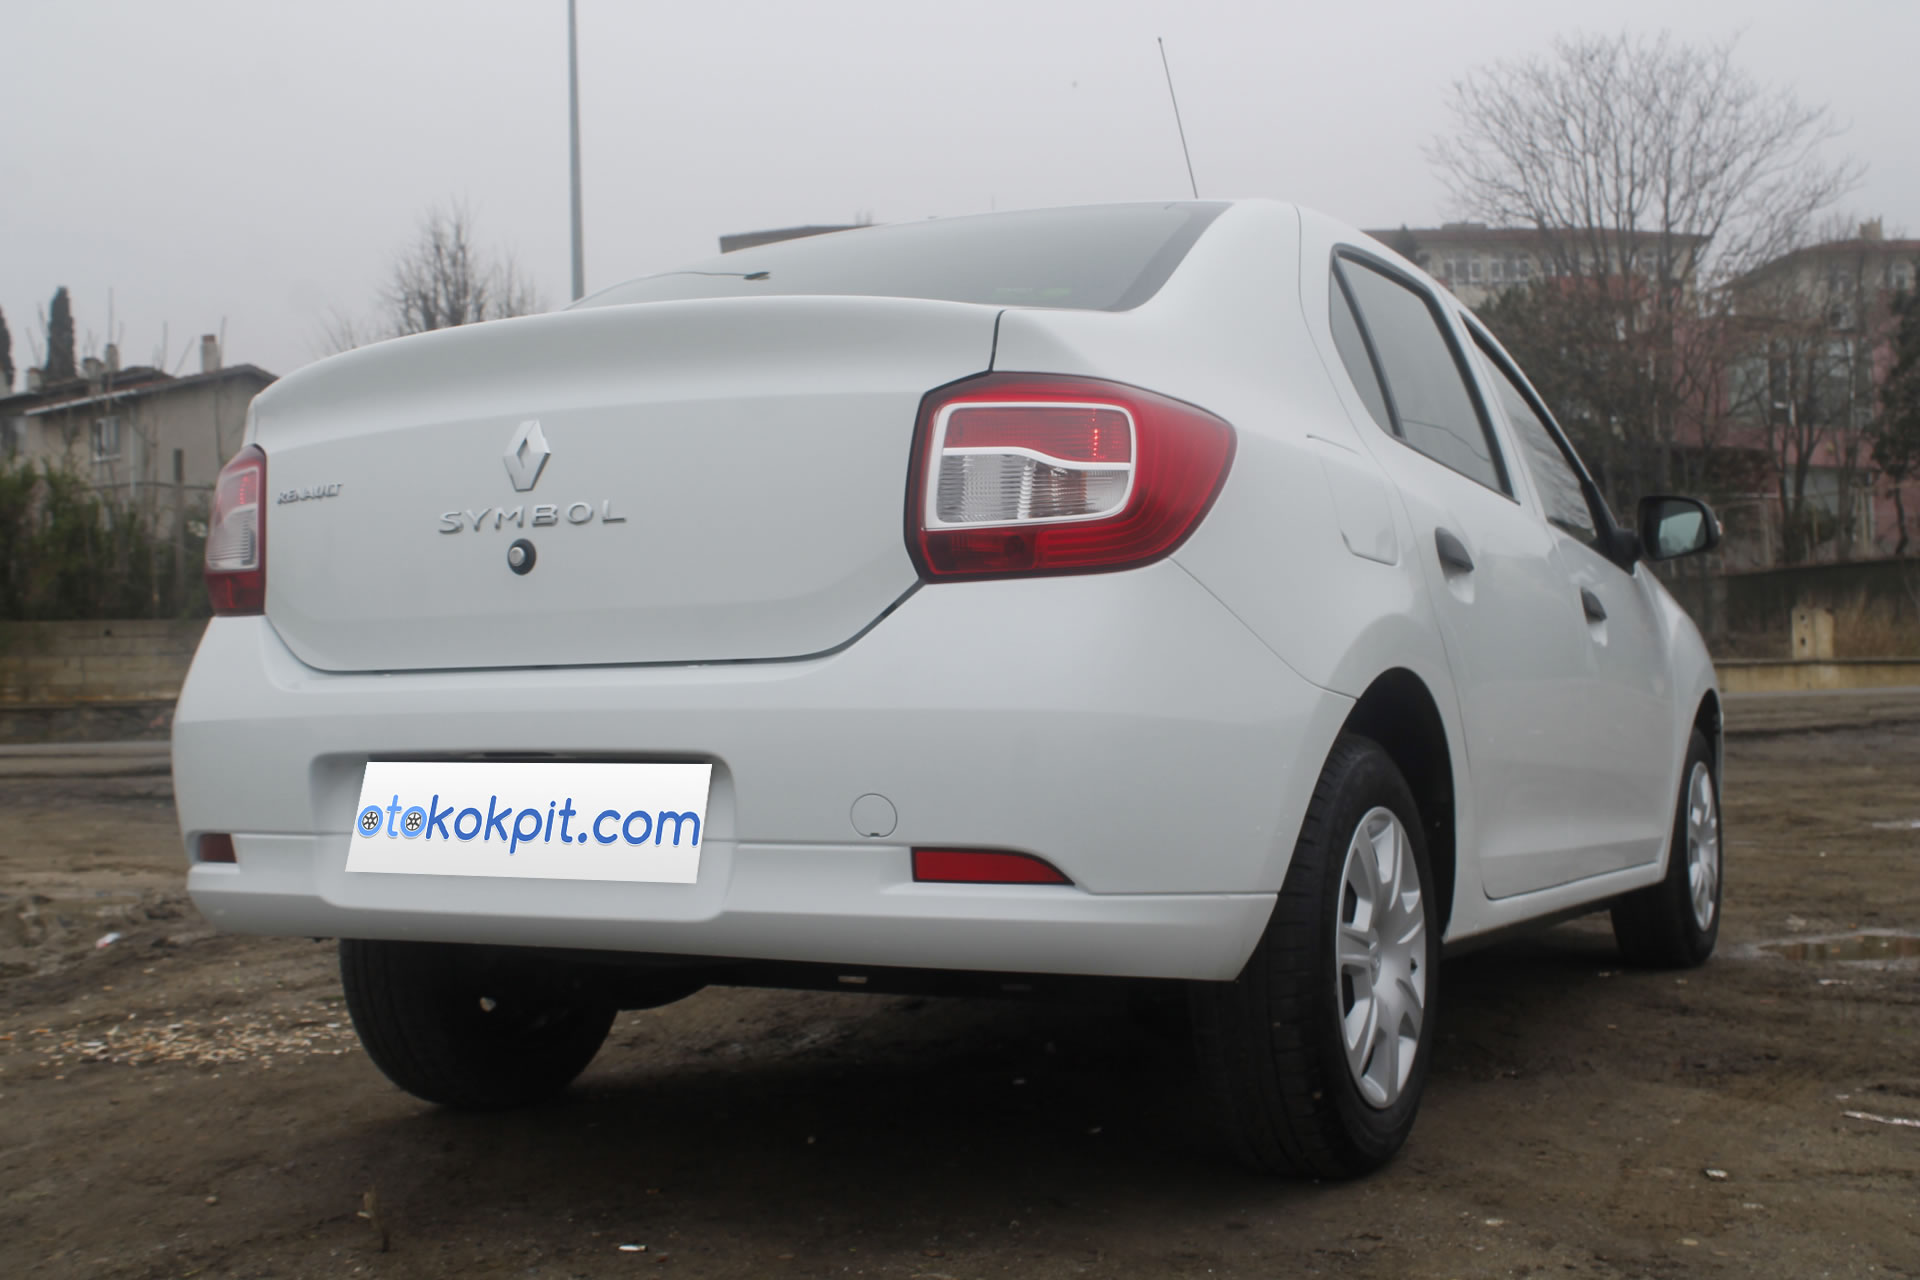 2015 Renault Symbol 1.5 dCi Joy 75 PS İncelemesi